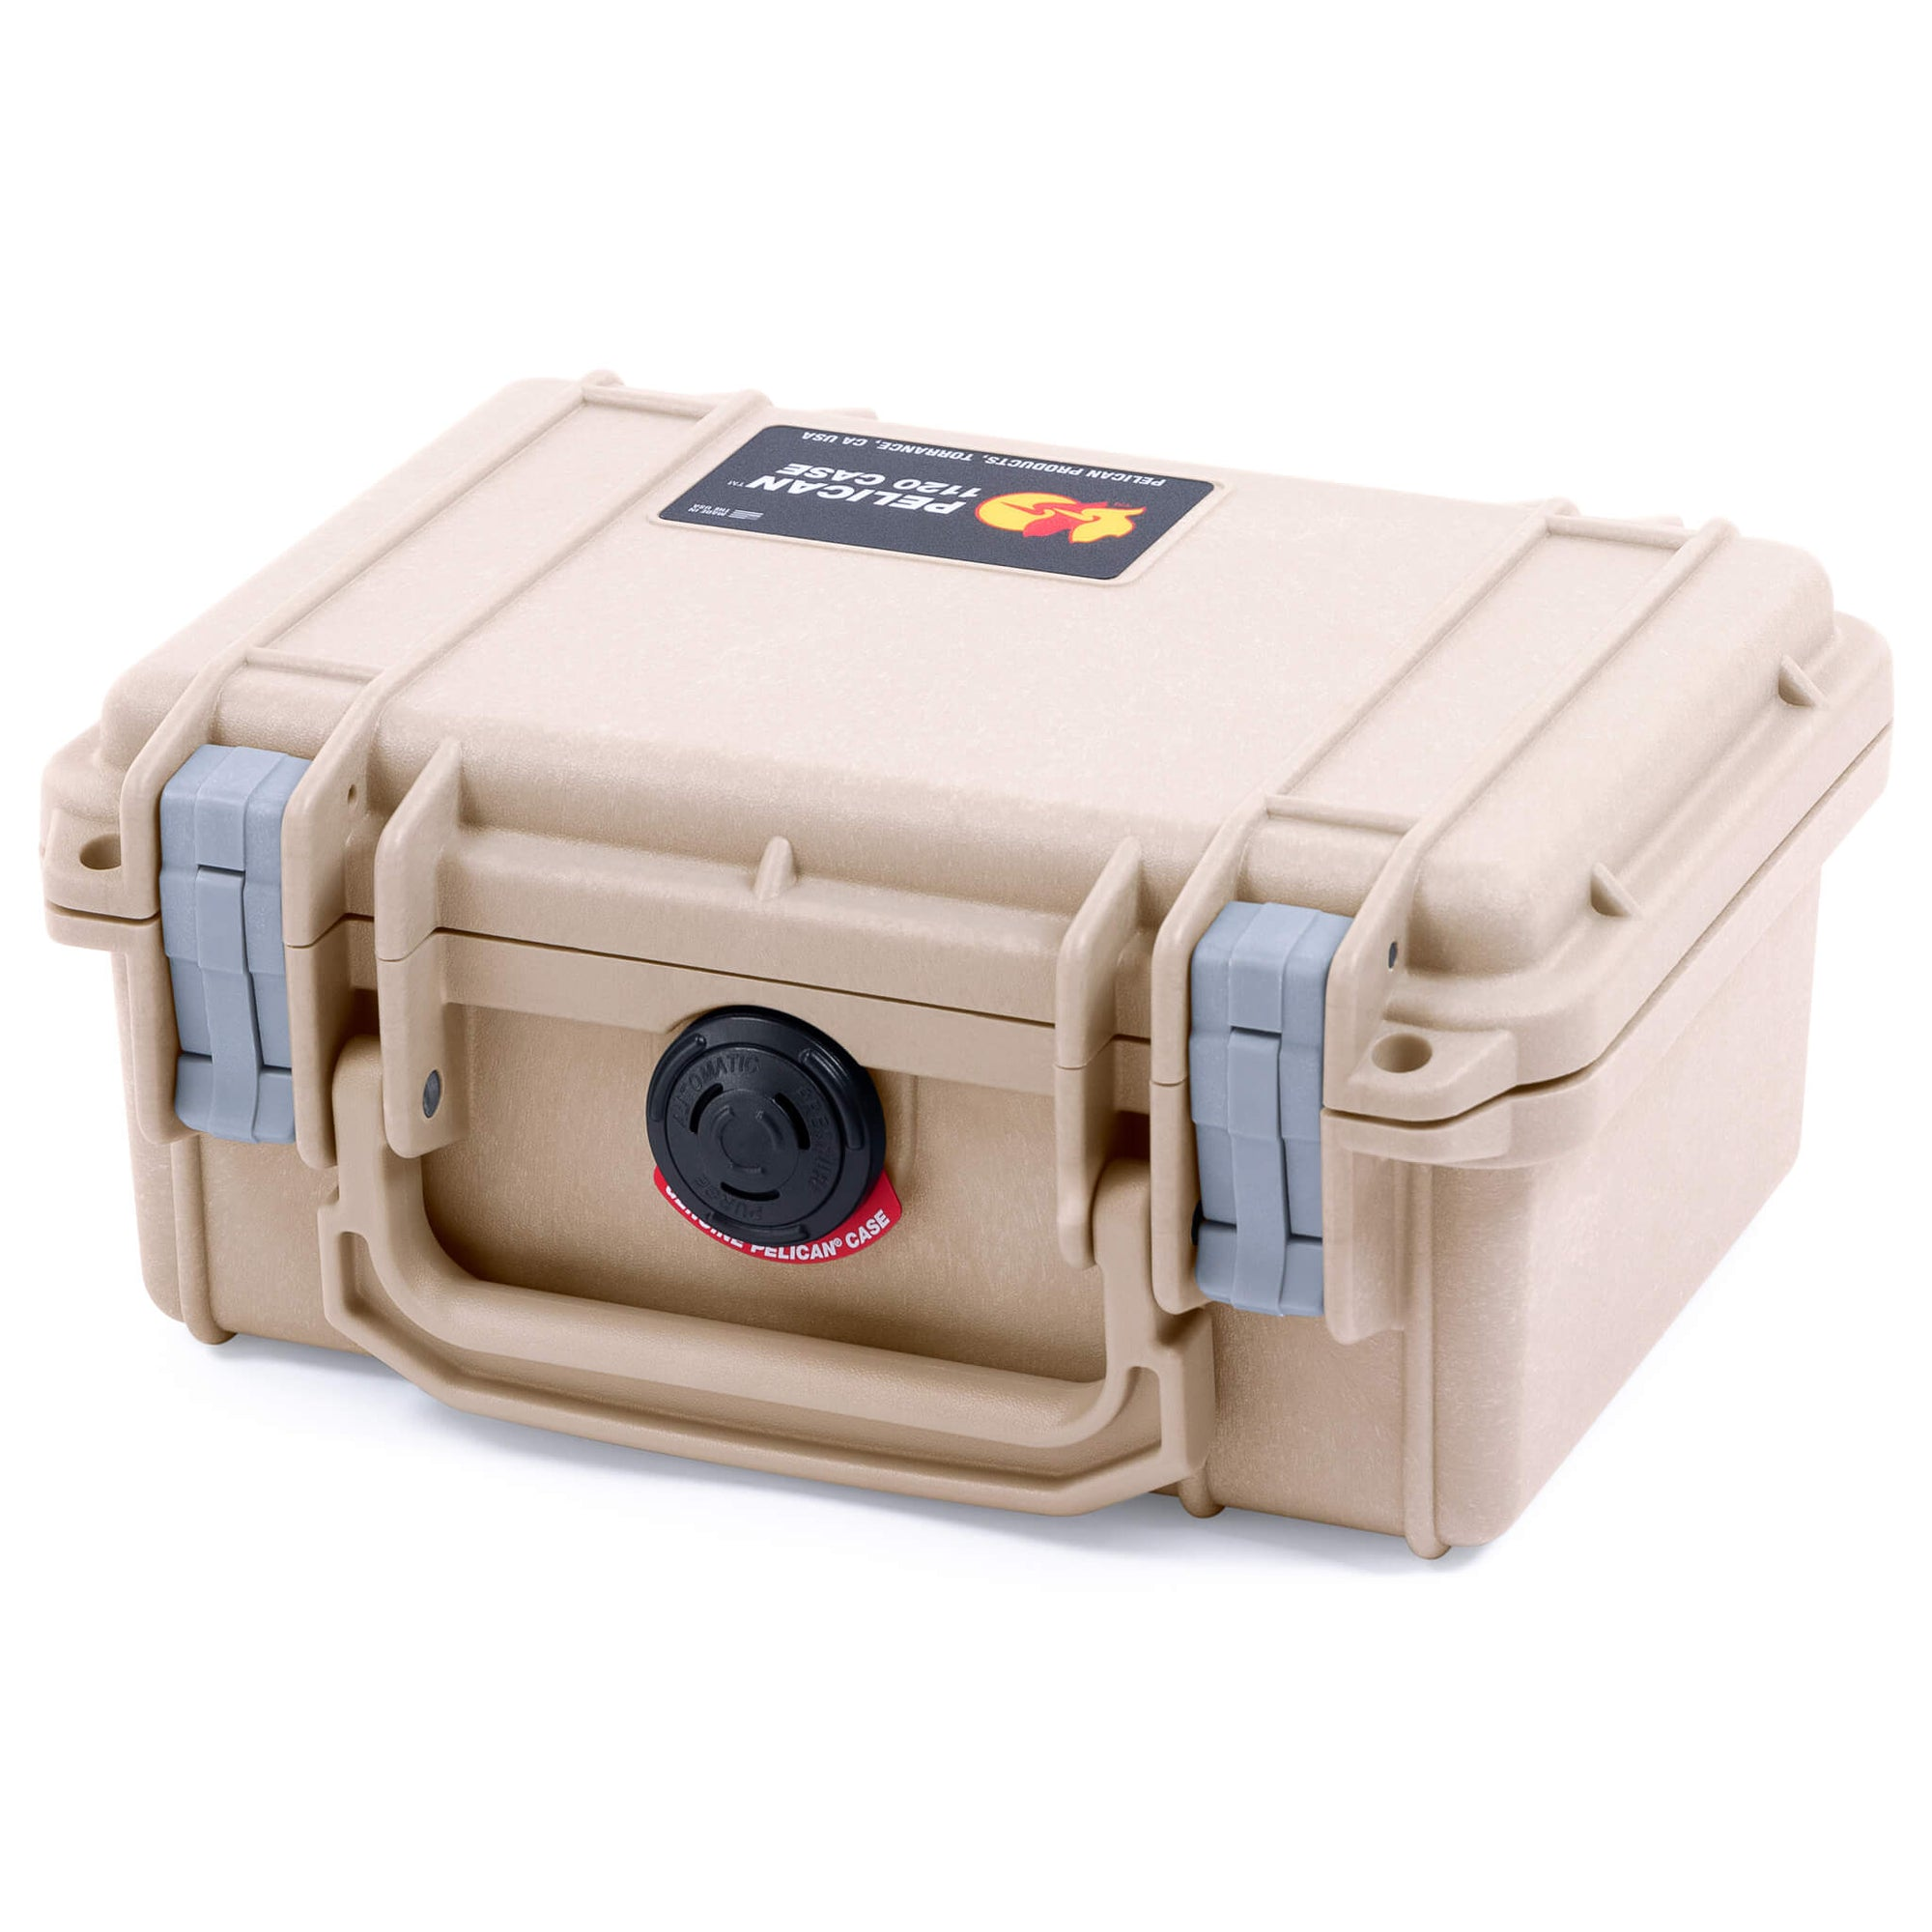 Pelican 1120 Case, Desert Tan with Silver Latches